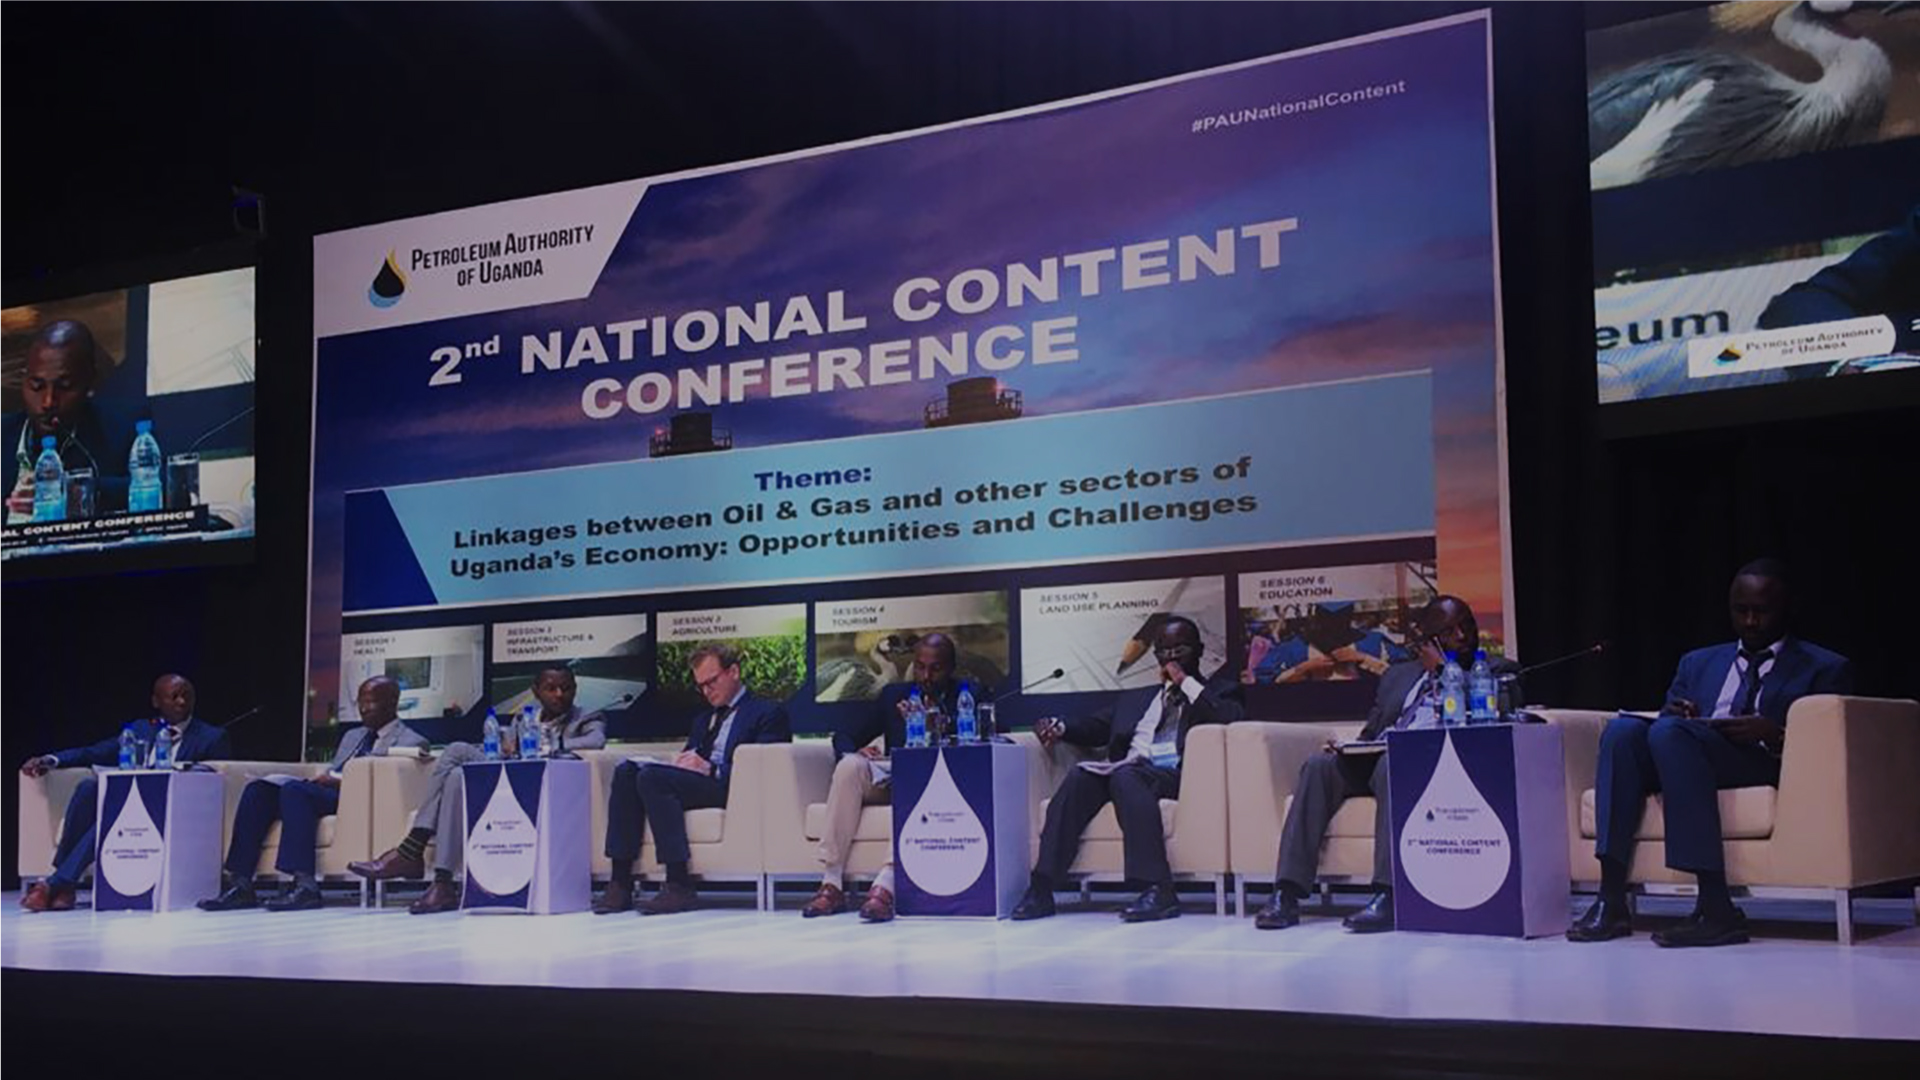 KEA Attends 2nd National Content Conference